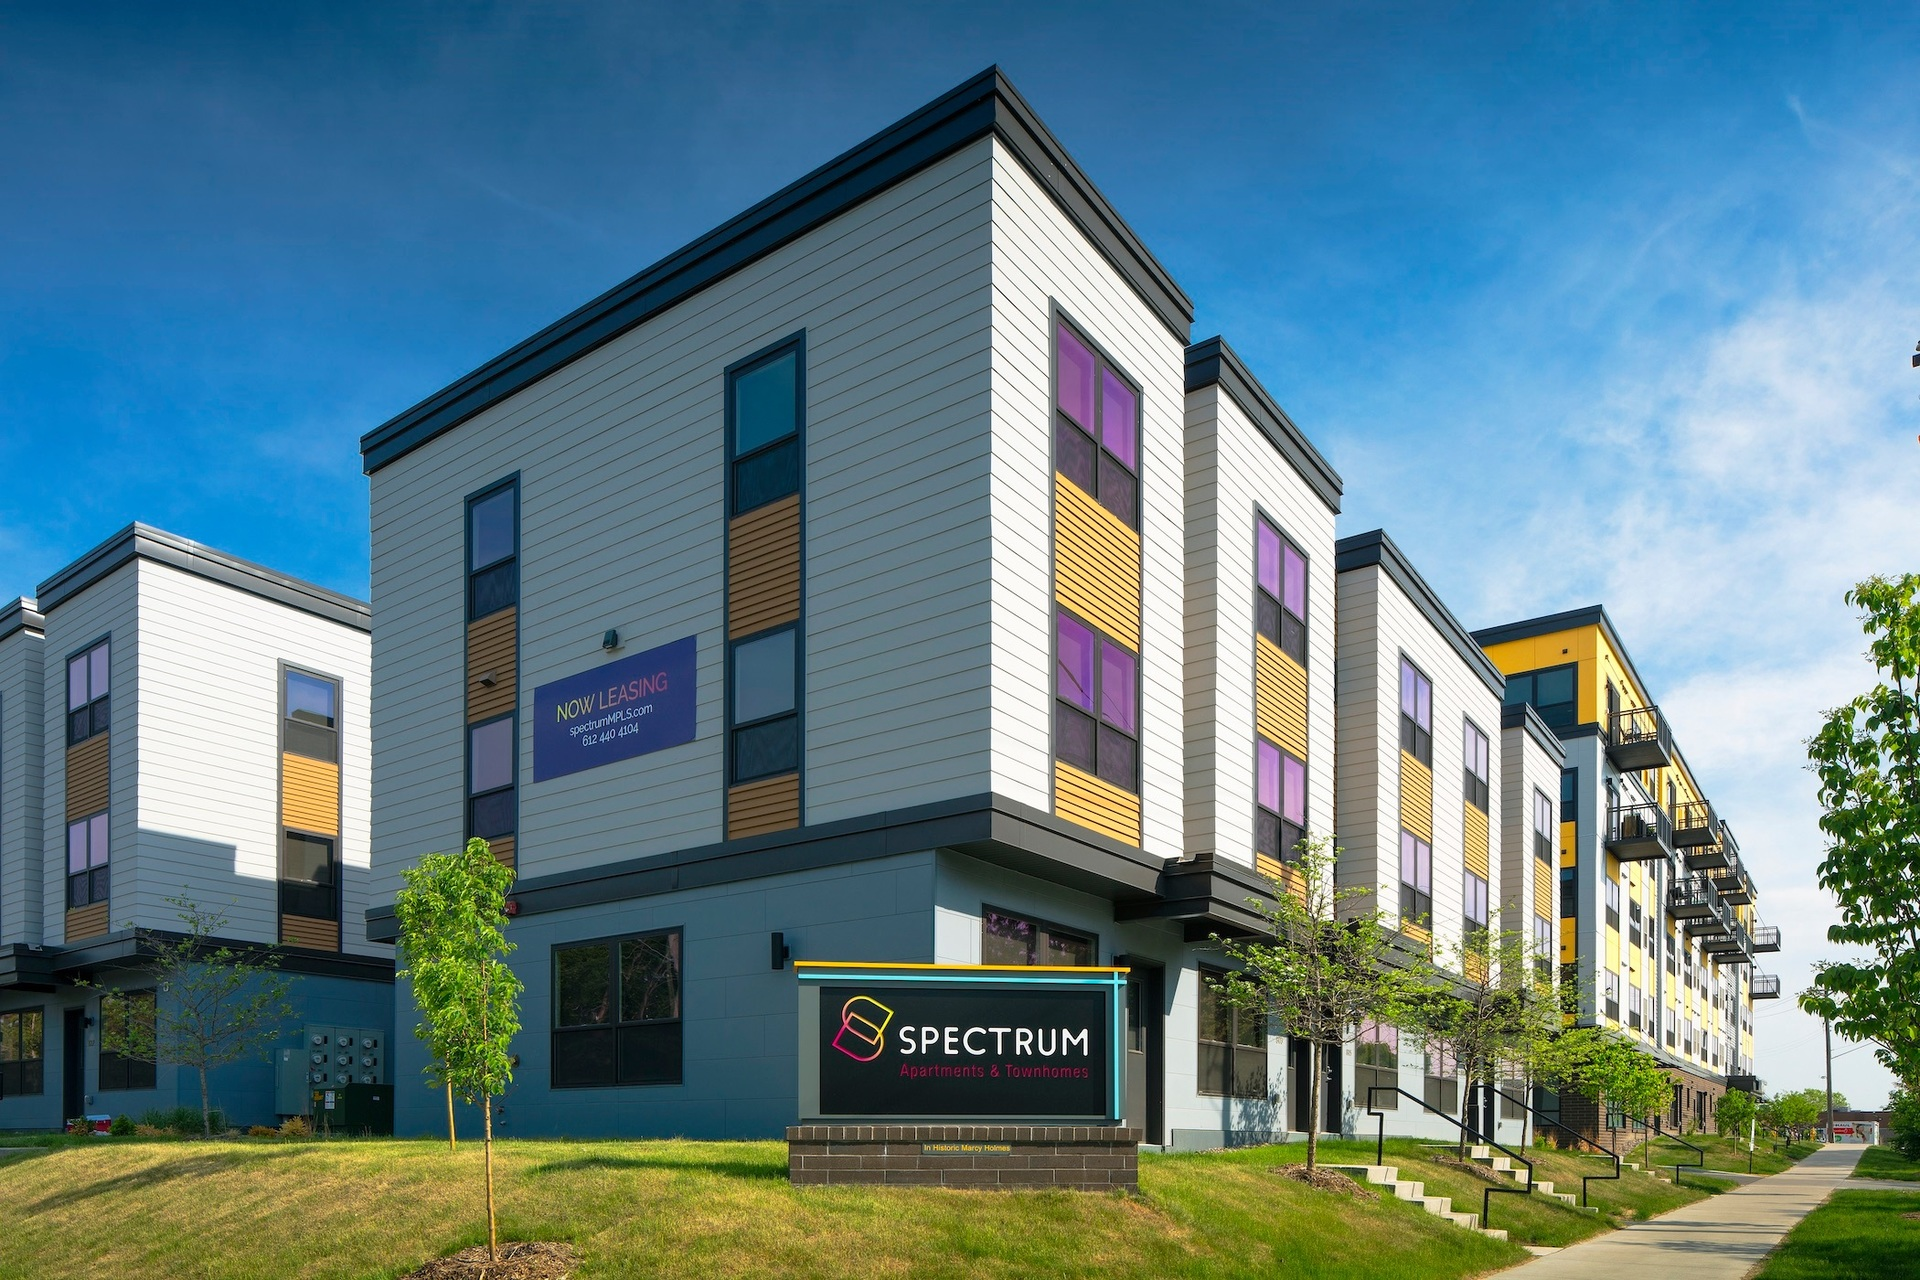 A splash of color gives a distinctive look to the Spectrum apartments exterior design at Minneapolis, Minnesota, by DJR Architecture.